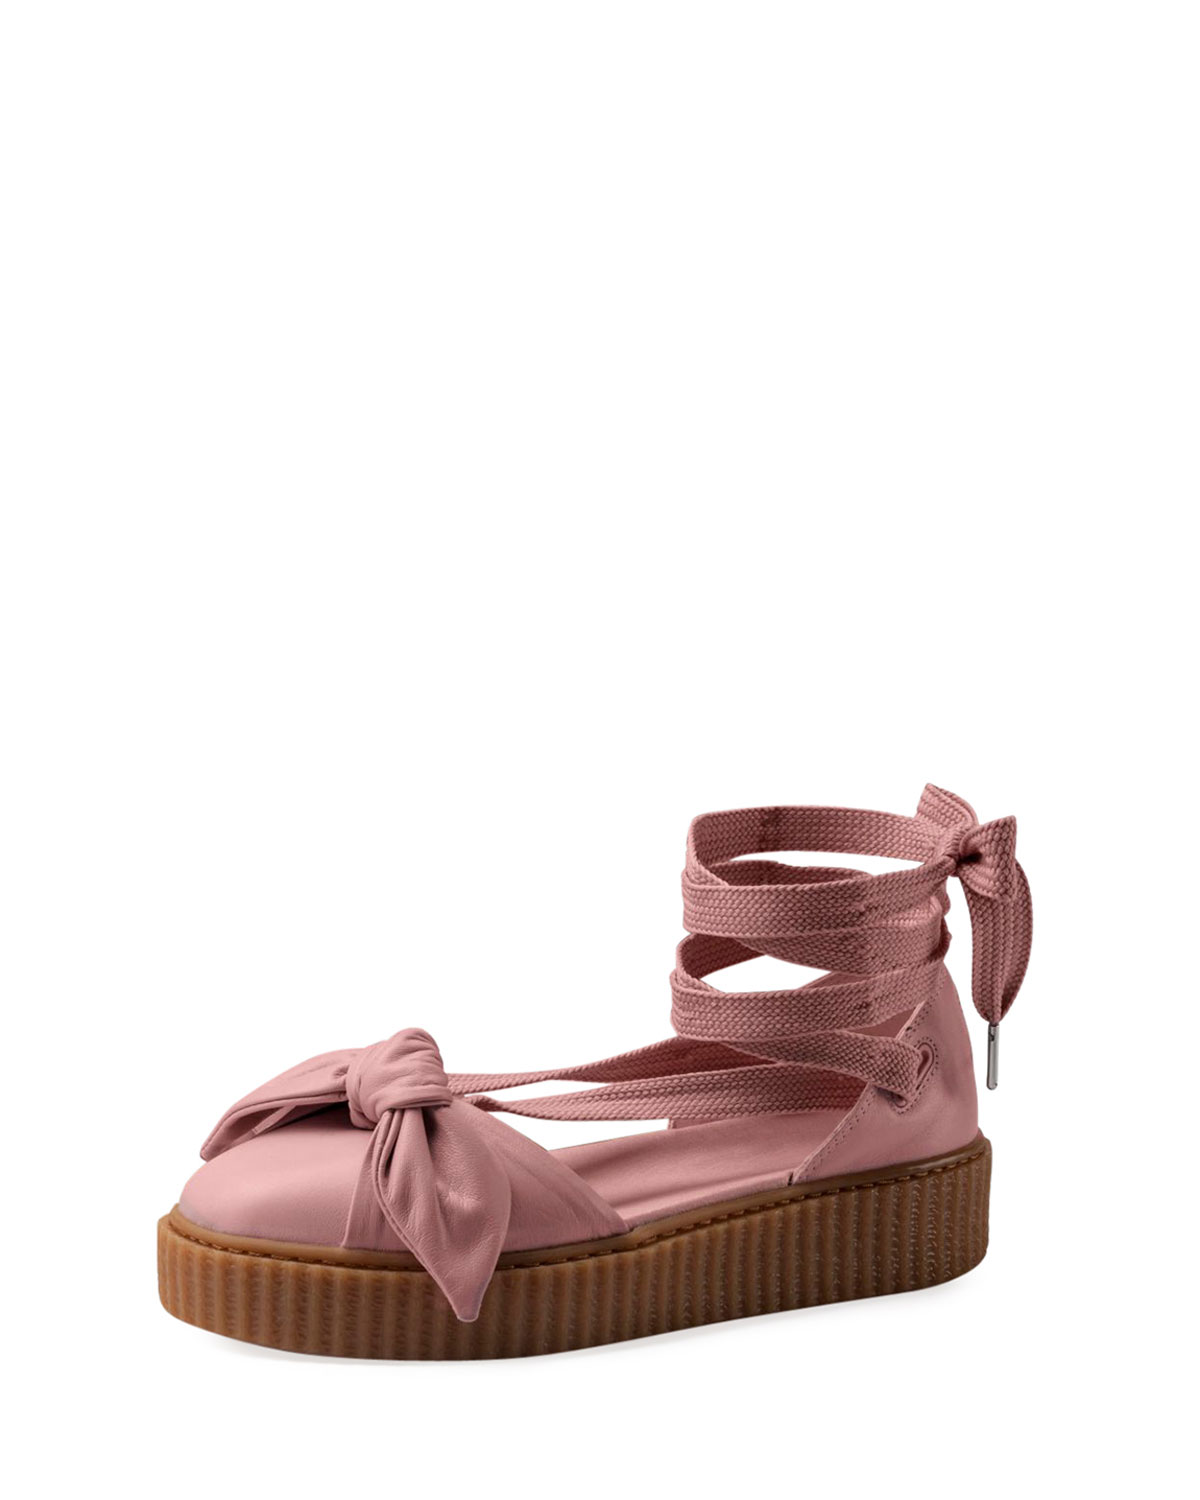 2a78673ec147 Fenty Puma by Rihanna Bow Leather Creeper Sandals